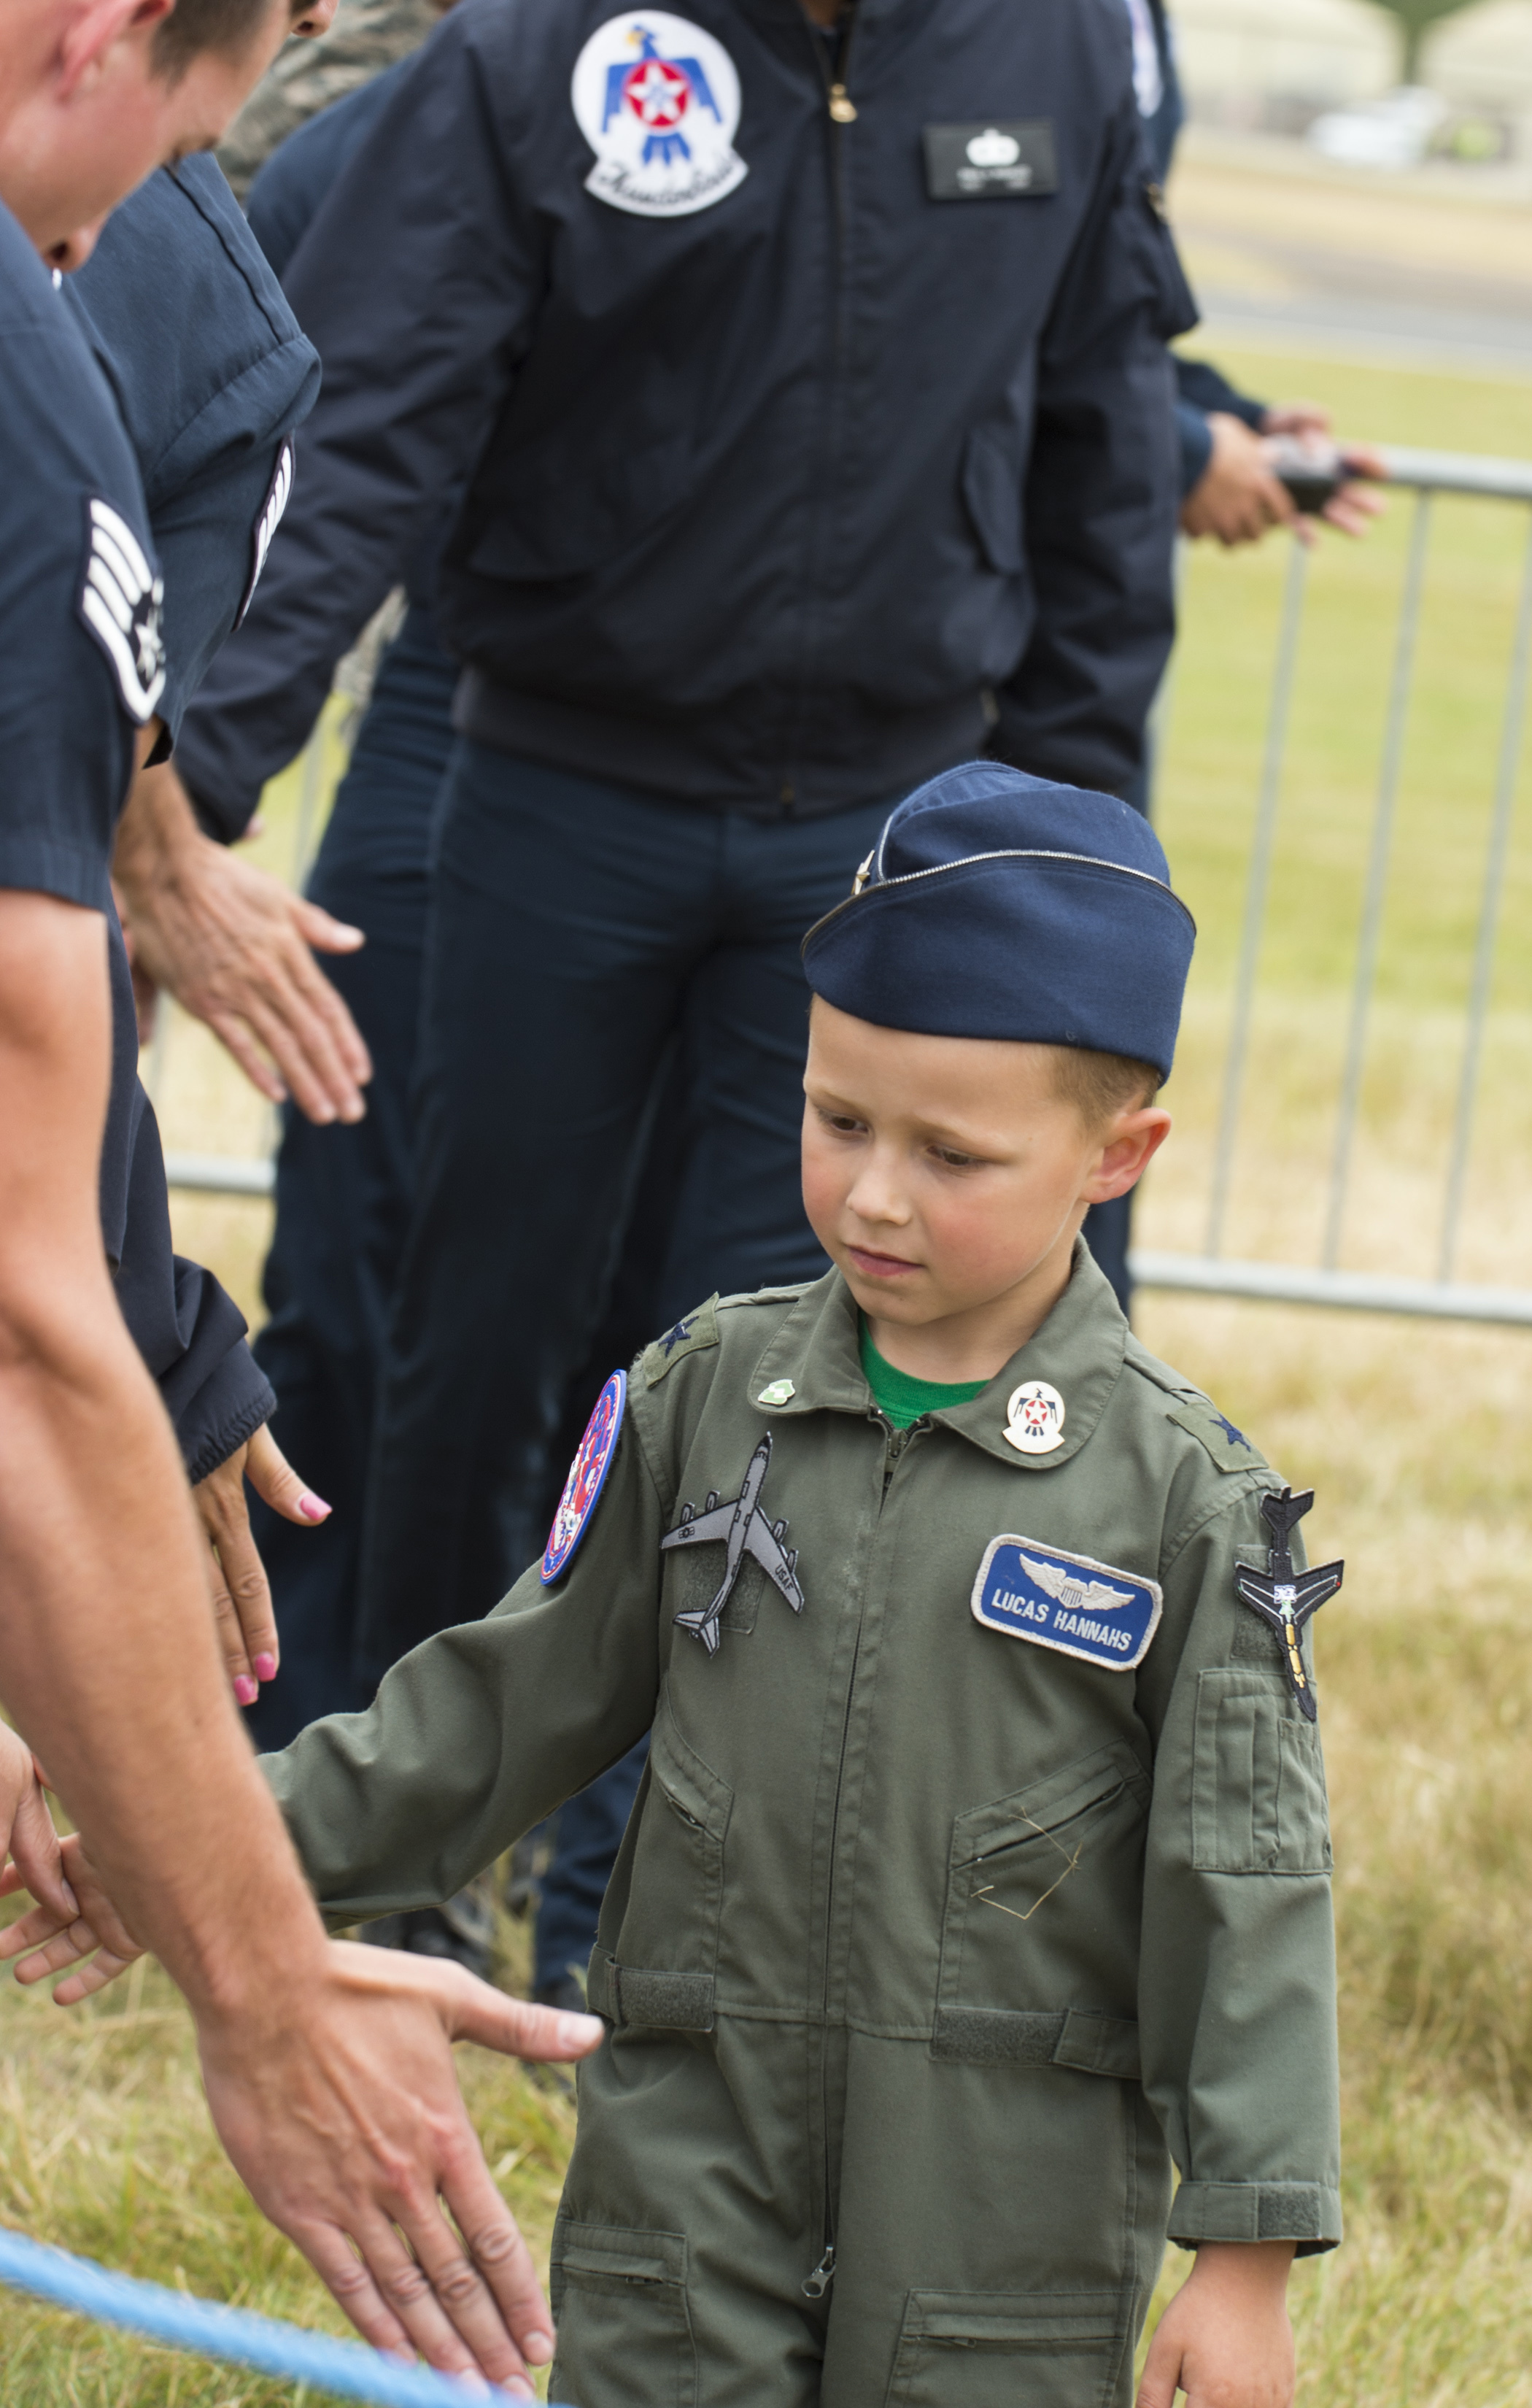 FAIRFORD, United Kingdom –Lucas Hannahs (right), a U.S. Air Force military dependent, meets with members of the U.S. Air Force Thunderbird aeronautical team during the 2017 Royal International Air Tattoo (RIAT) located at RAF Fairford, United Kingdom, on July 15, 2017. This year commemorates the U.S. Air Force's 70th Anniversary which was highlighted during RIAT by displaying its lineage and advancements in military aircraft. (U.S. Air Force Photo by Tech. Sgt. Brian Kimball)